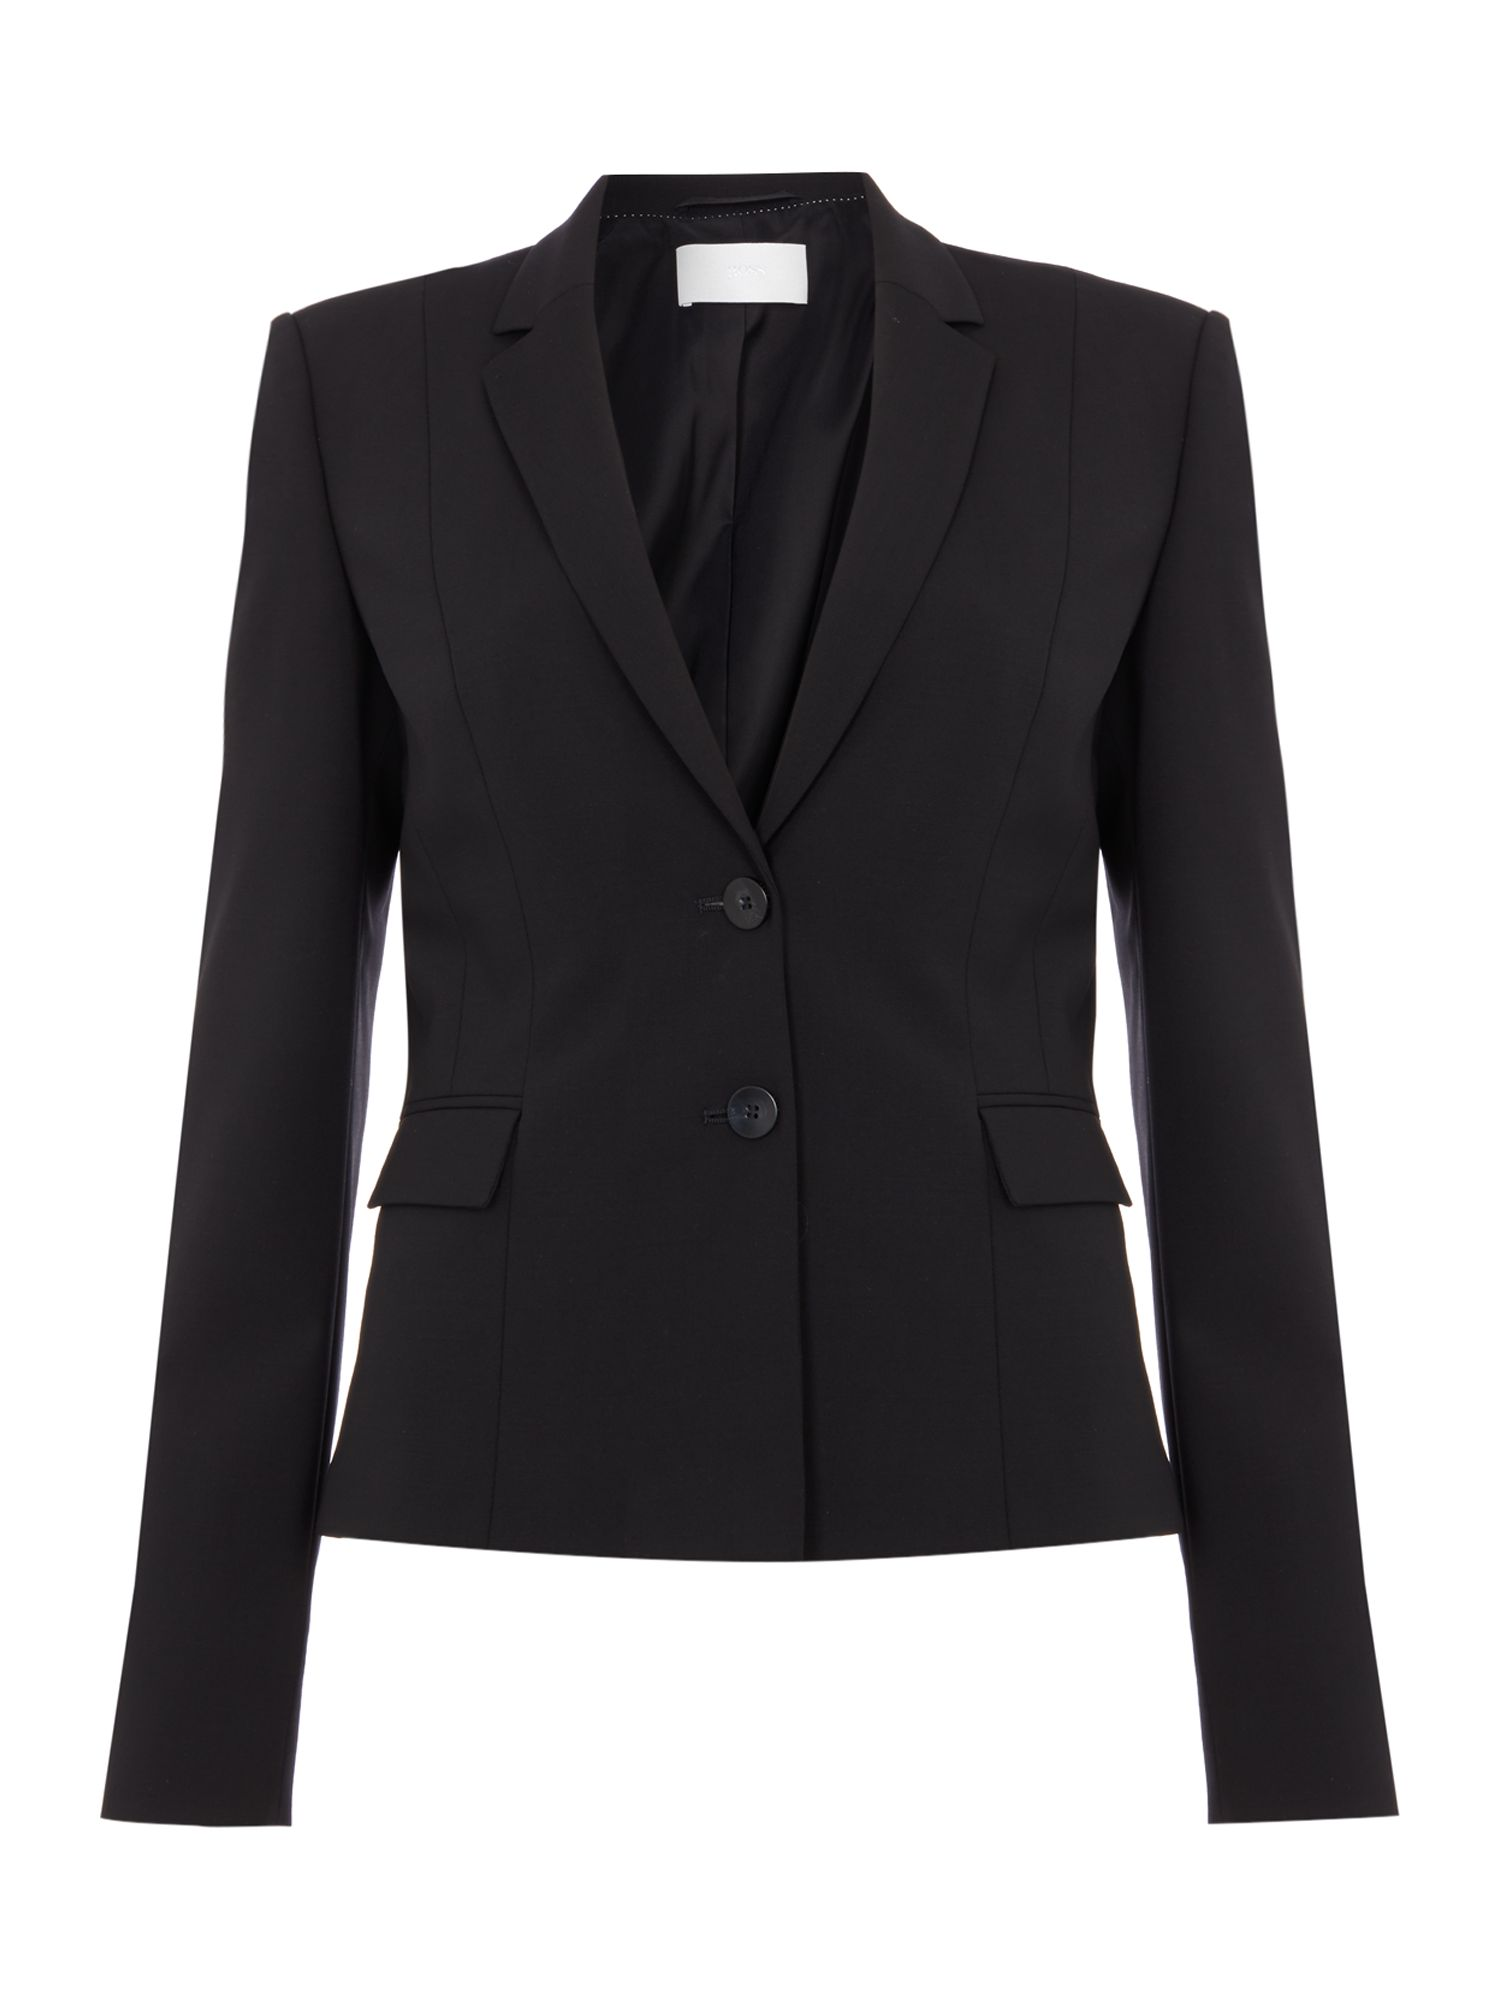 Hugo Boss Jaru Wool Strtch 2 Btn 56cm Suit Jacket Black